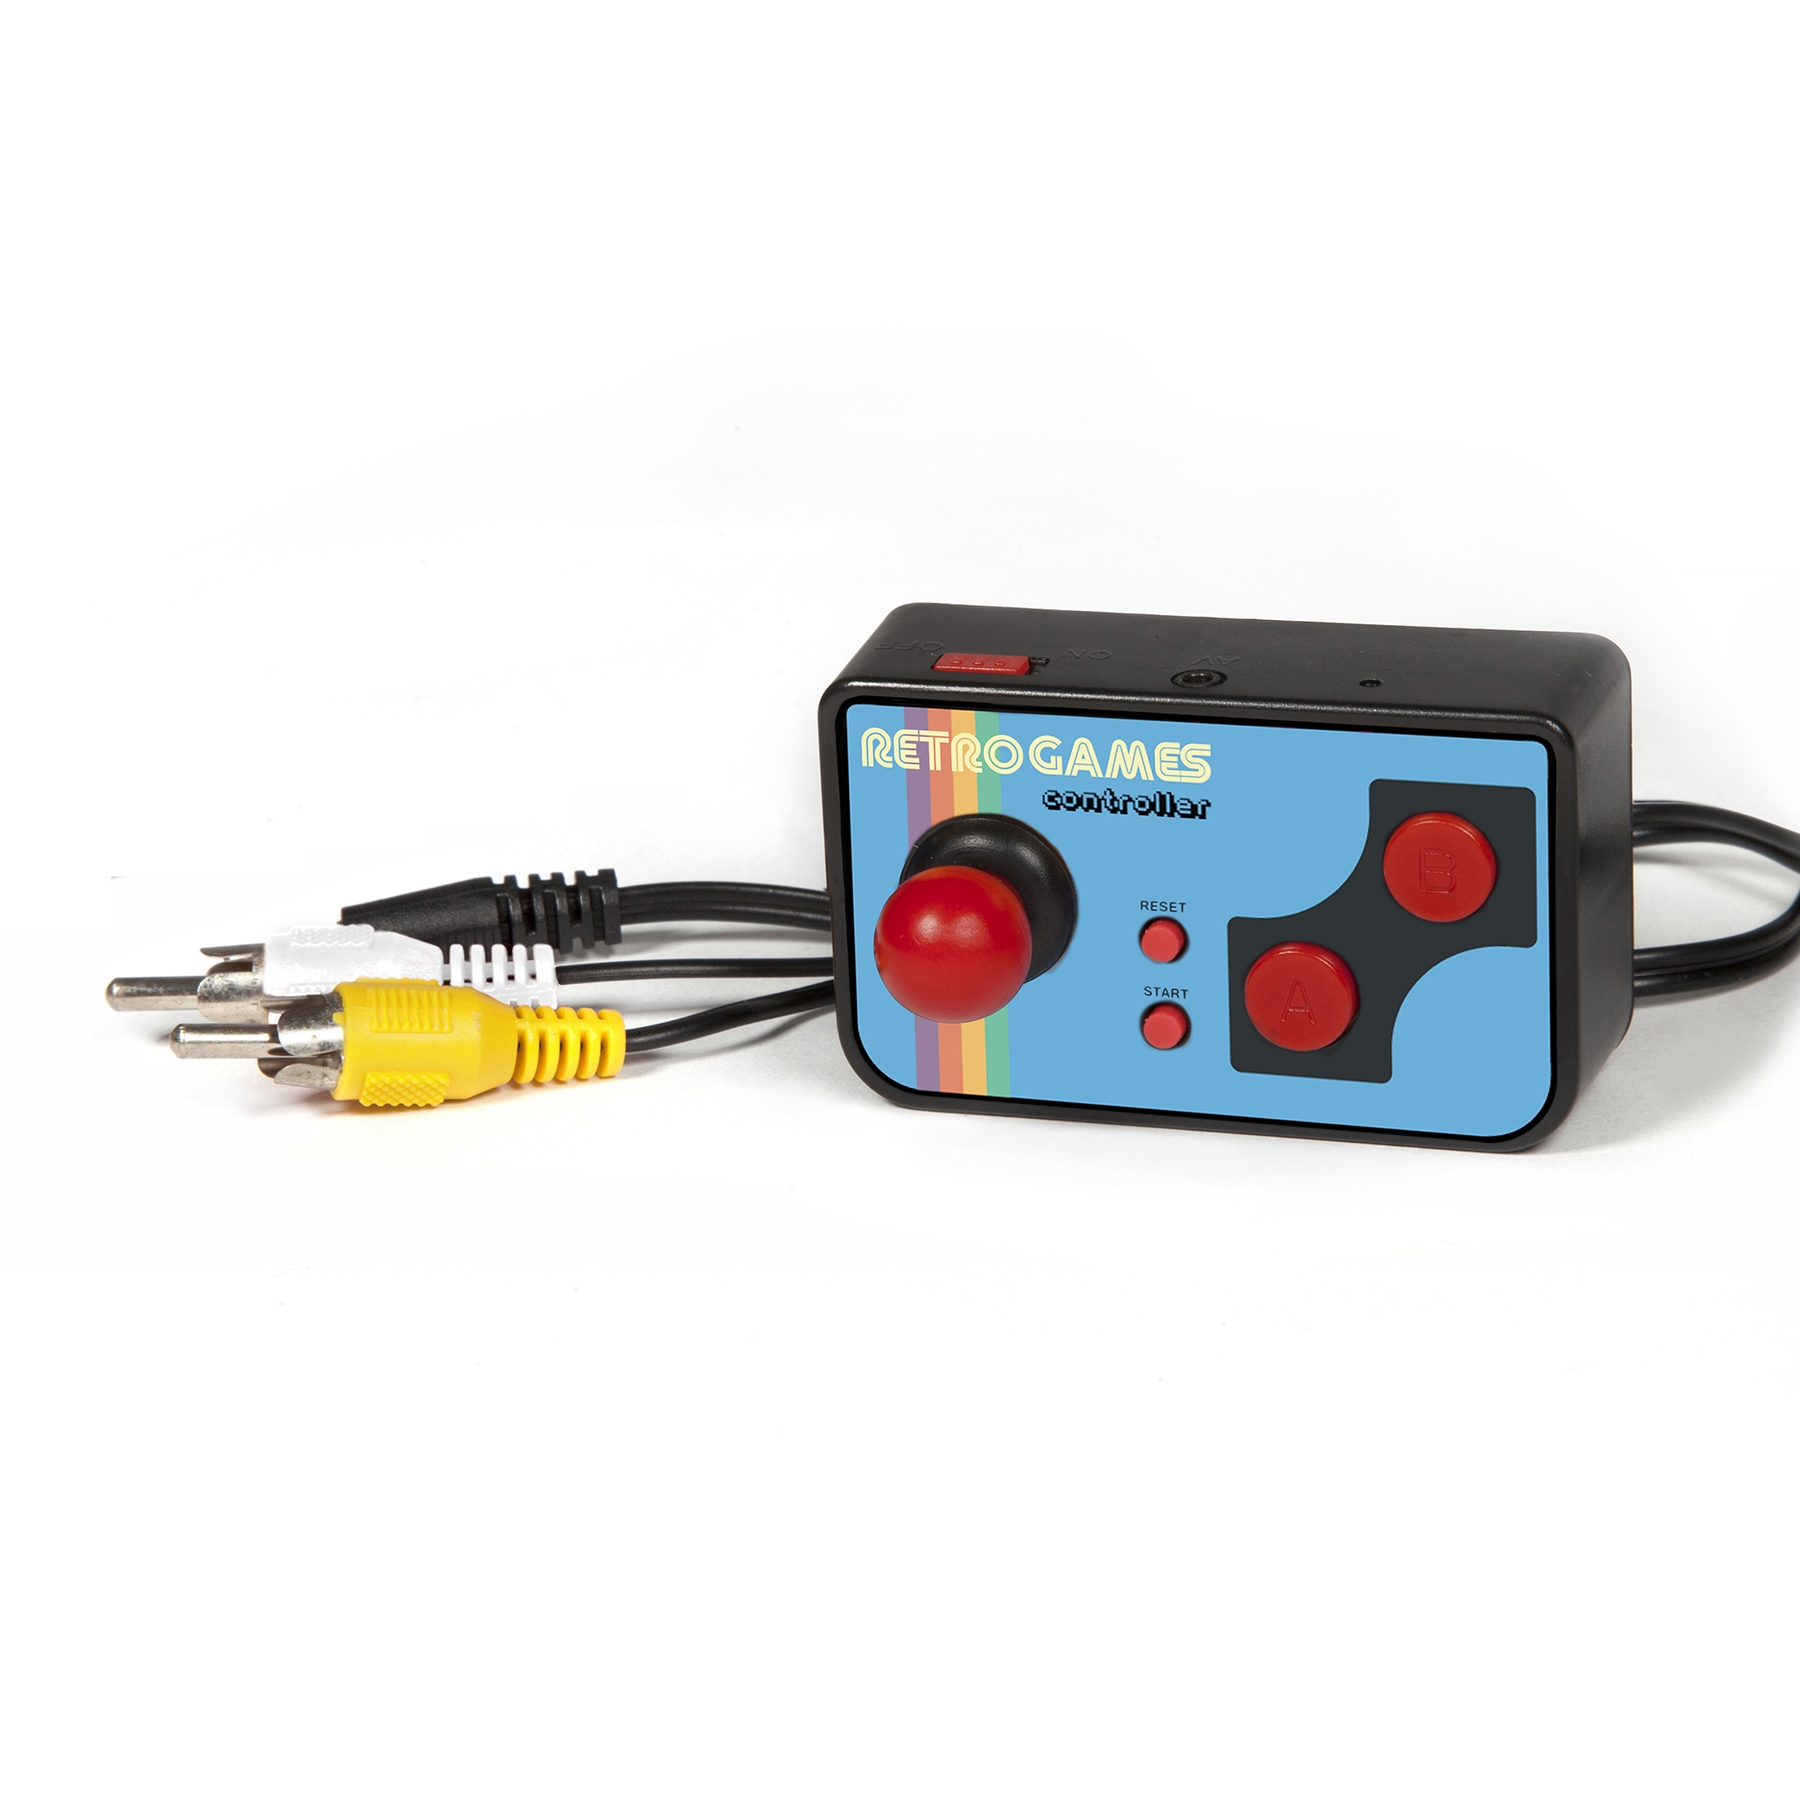 Image showing the Retro TV Games Controller and the included cable.